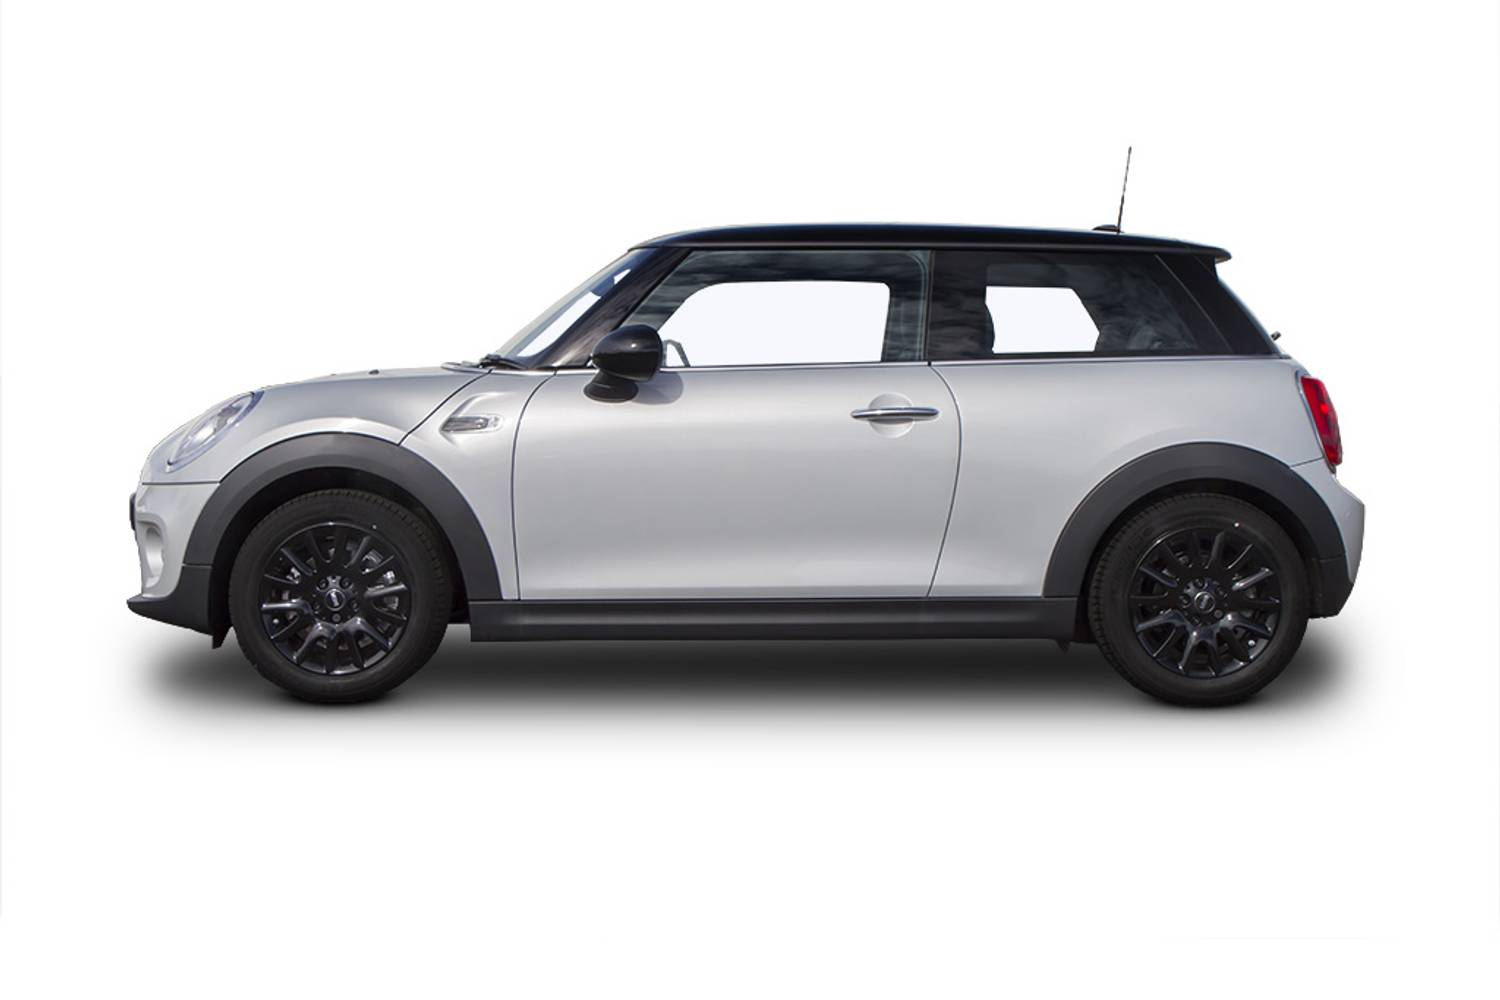 New Mini Hatchback Special Edition 1 5 1499 Gt Edition 3